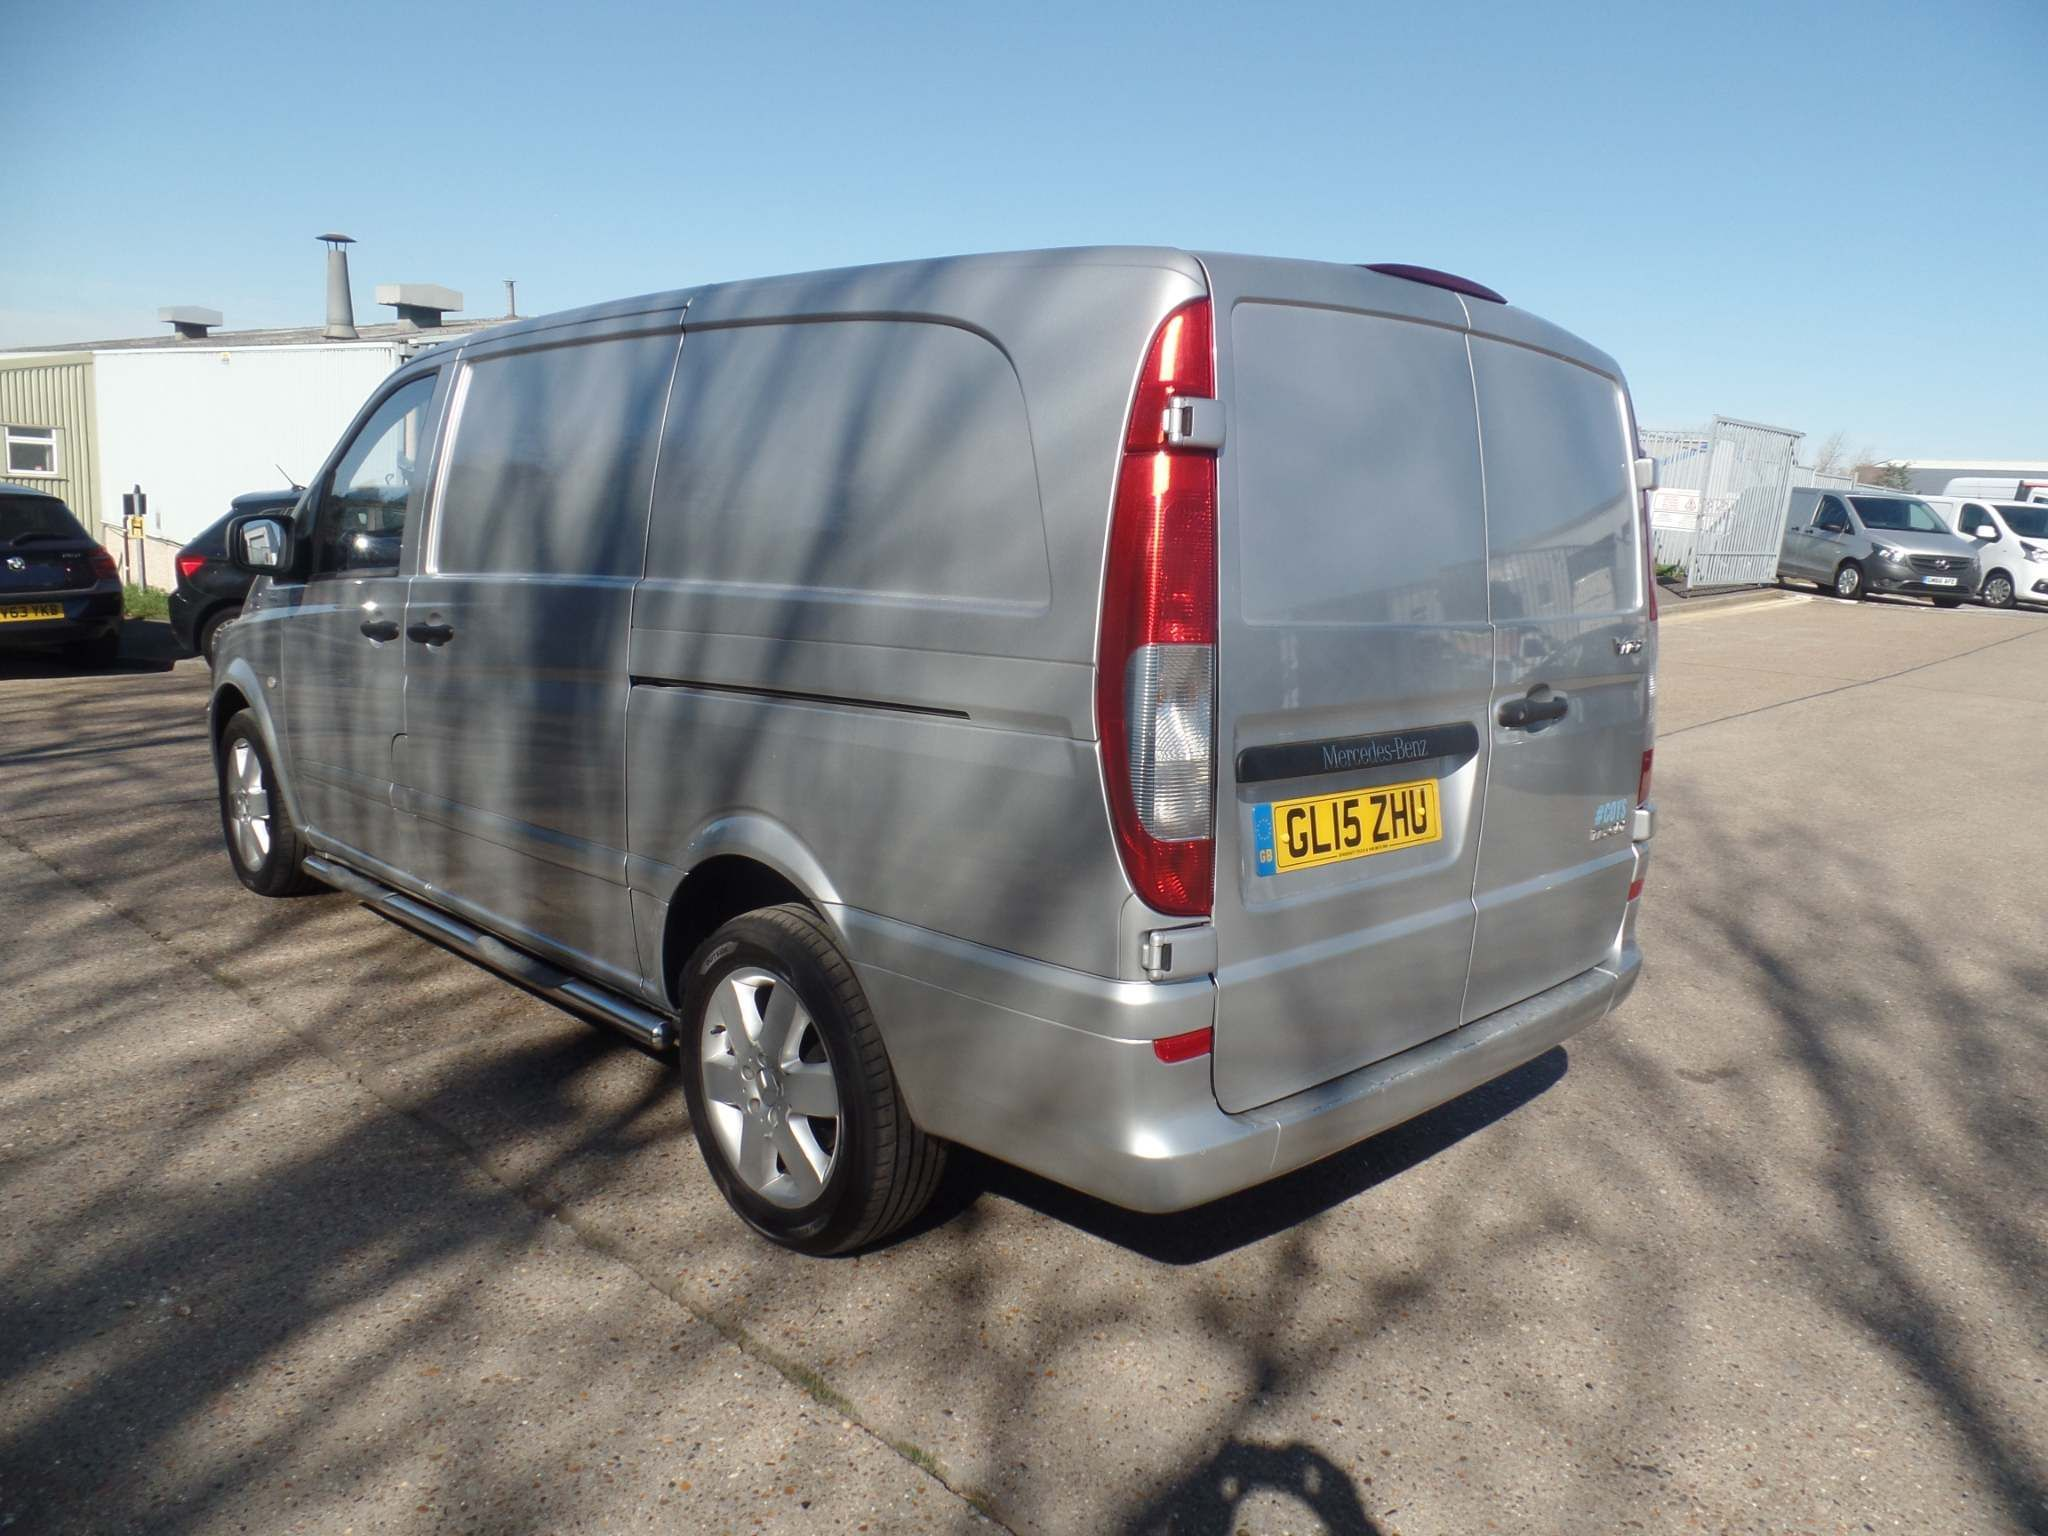 Mercedes-Benz Vito 2.1 116CDI BlueEFFICIENCY Long Panel Van 5dr (EU5) - image 4